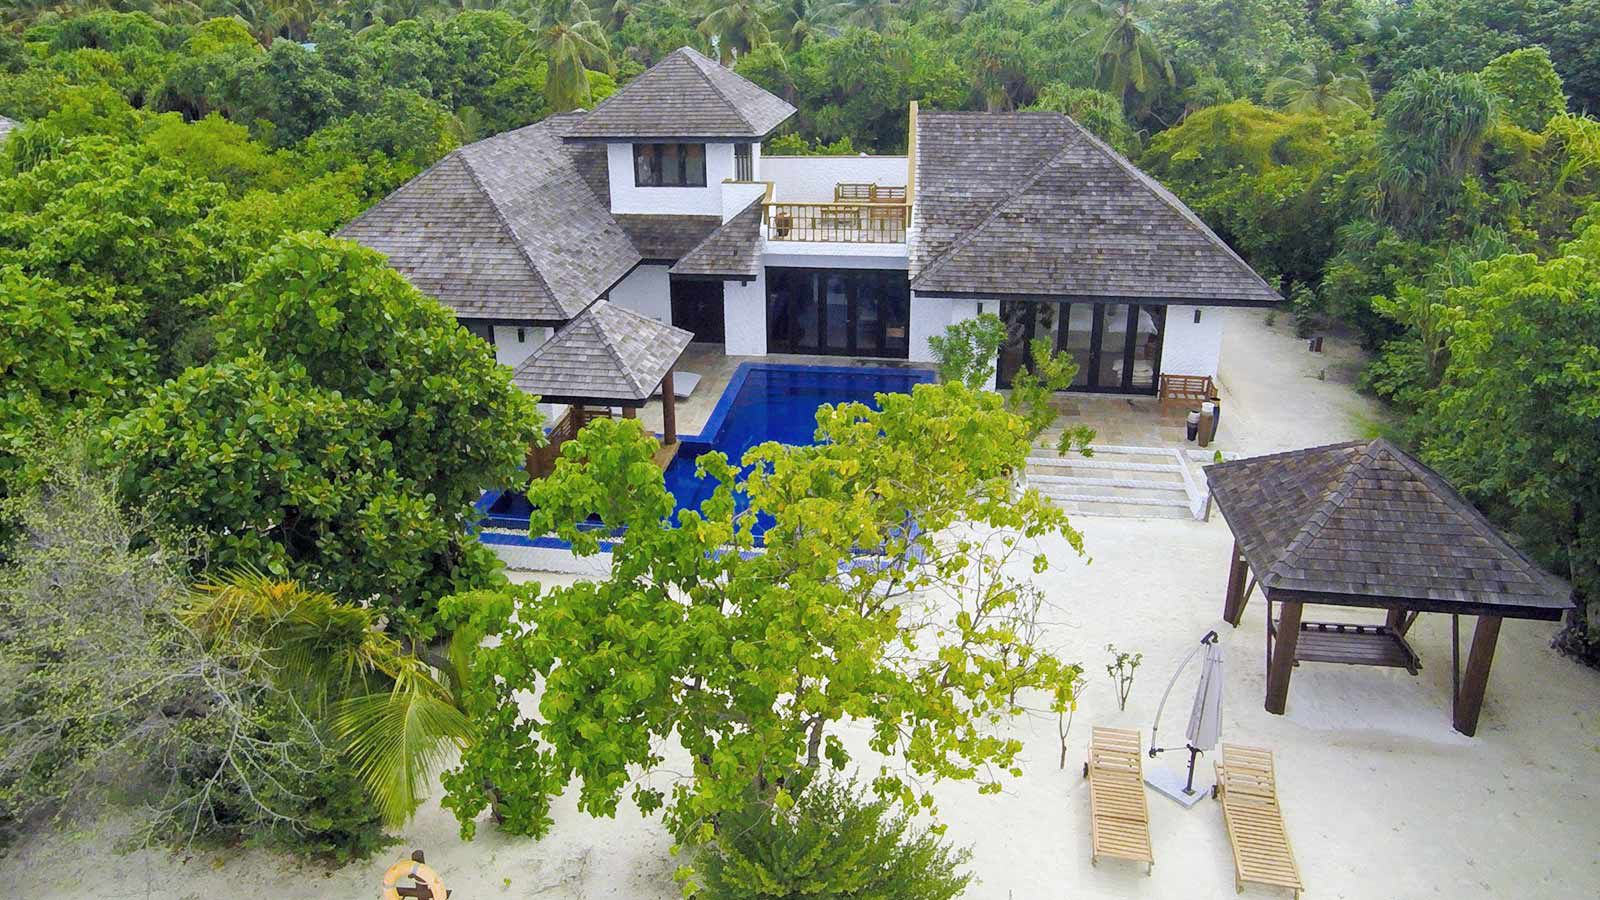 Maldives Family Villa with Pool - Luxury 2 Bedroom Family Villas Maldives